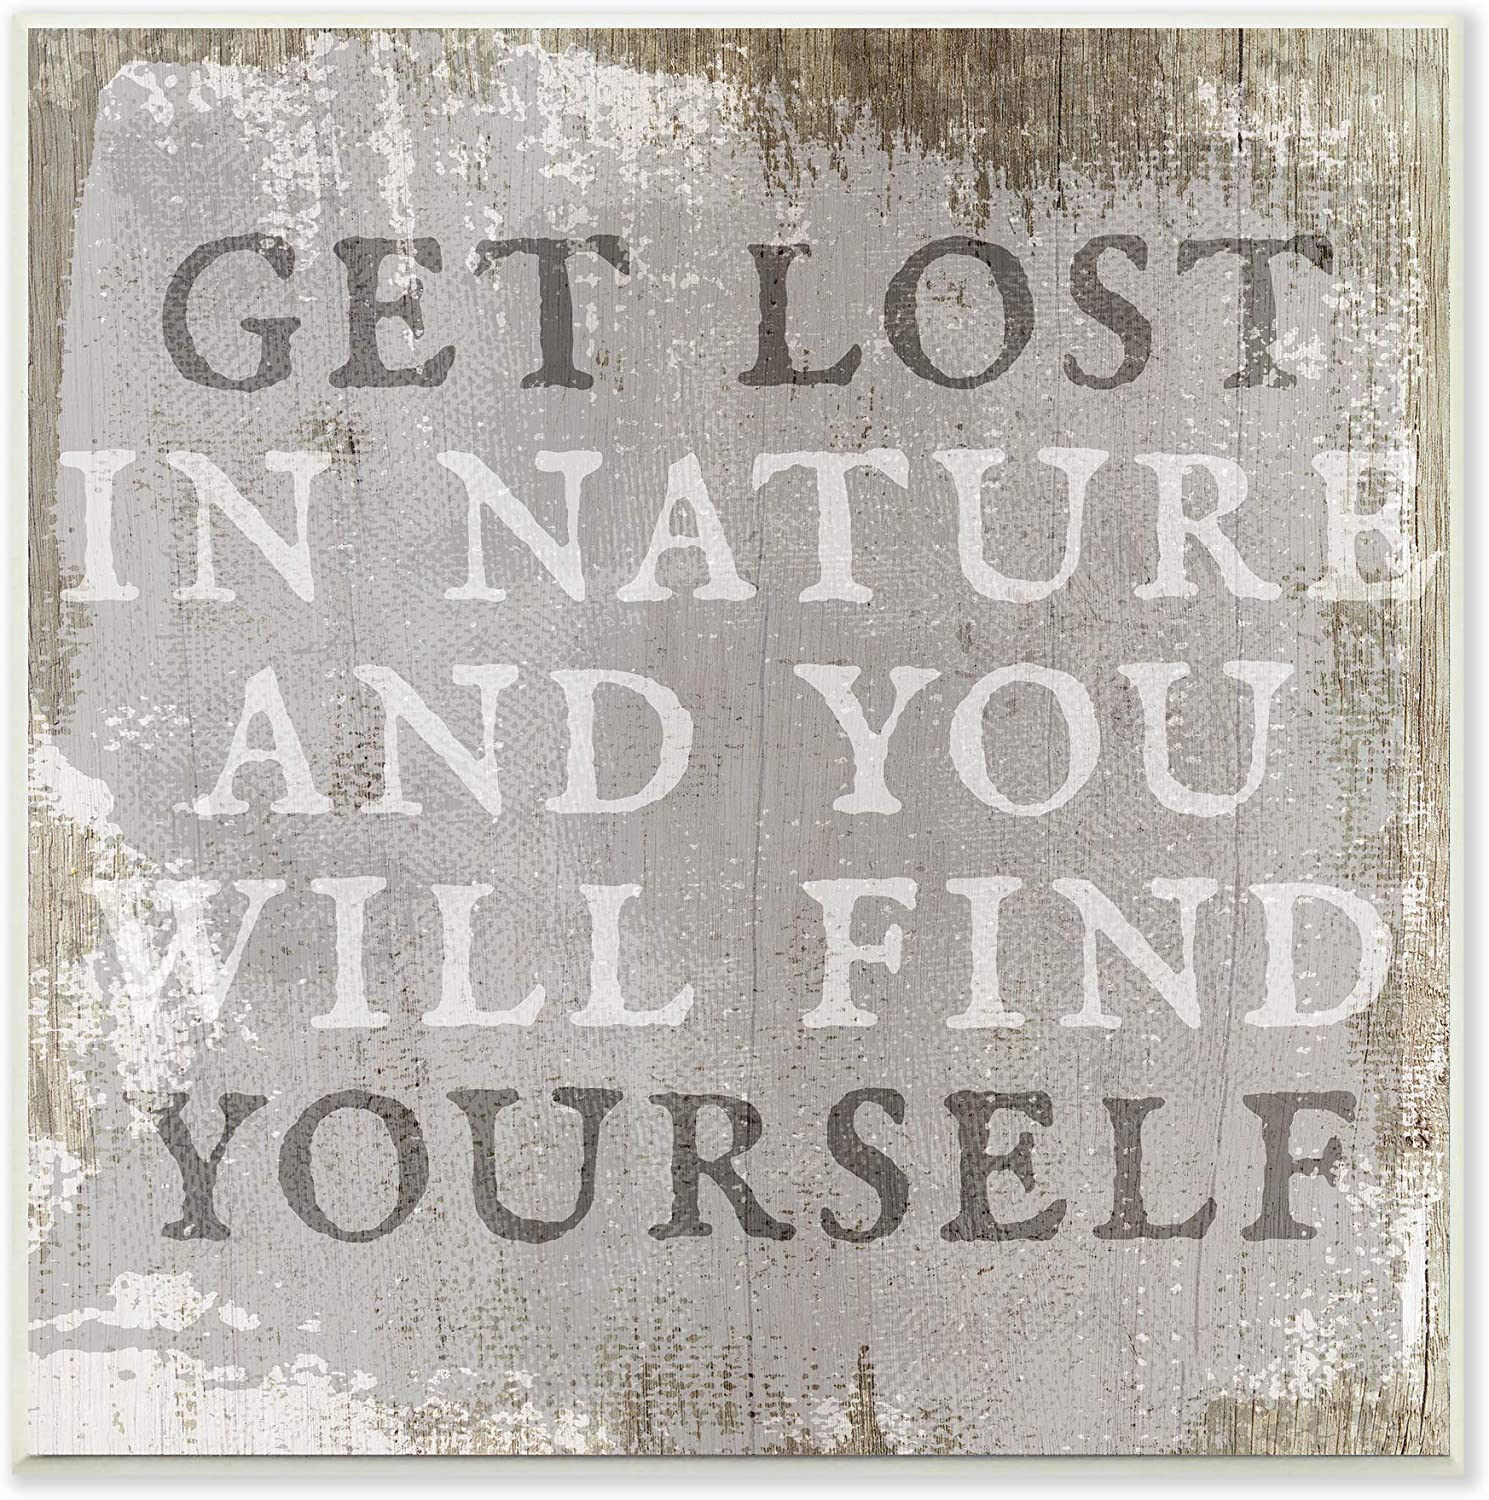 Stupell Industries Get Lost in Nature Phrase Grey Rustic Distress 12 x 12 Design by Daphne Polselli Wall Plaque